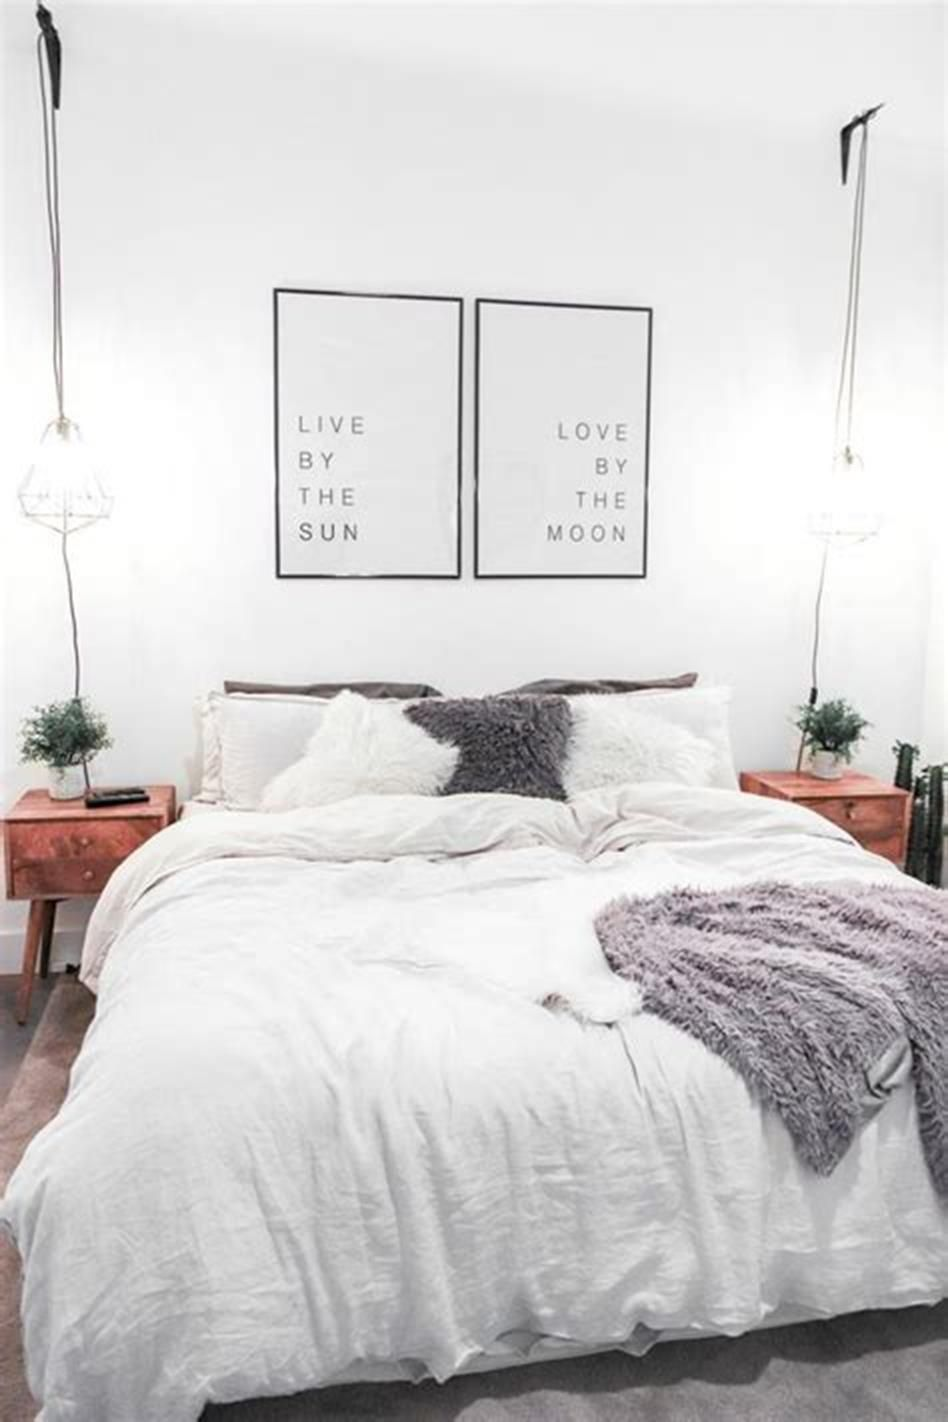 45 Cozy And Romantic Bedroom Ideas For Couples Apartment Bedroom Decor Small Apartment